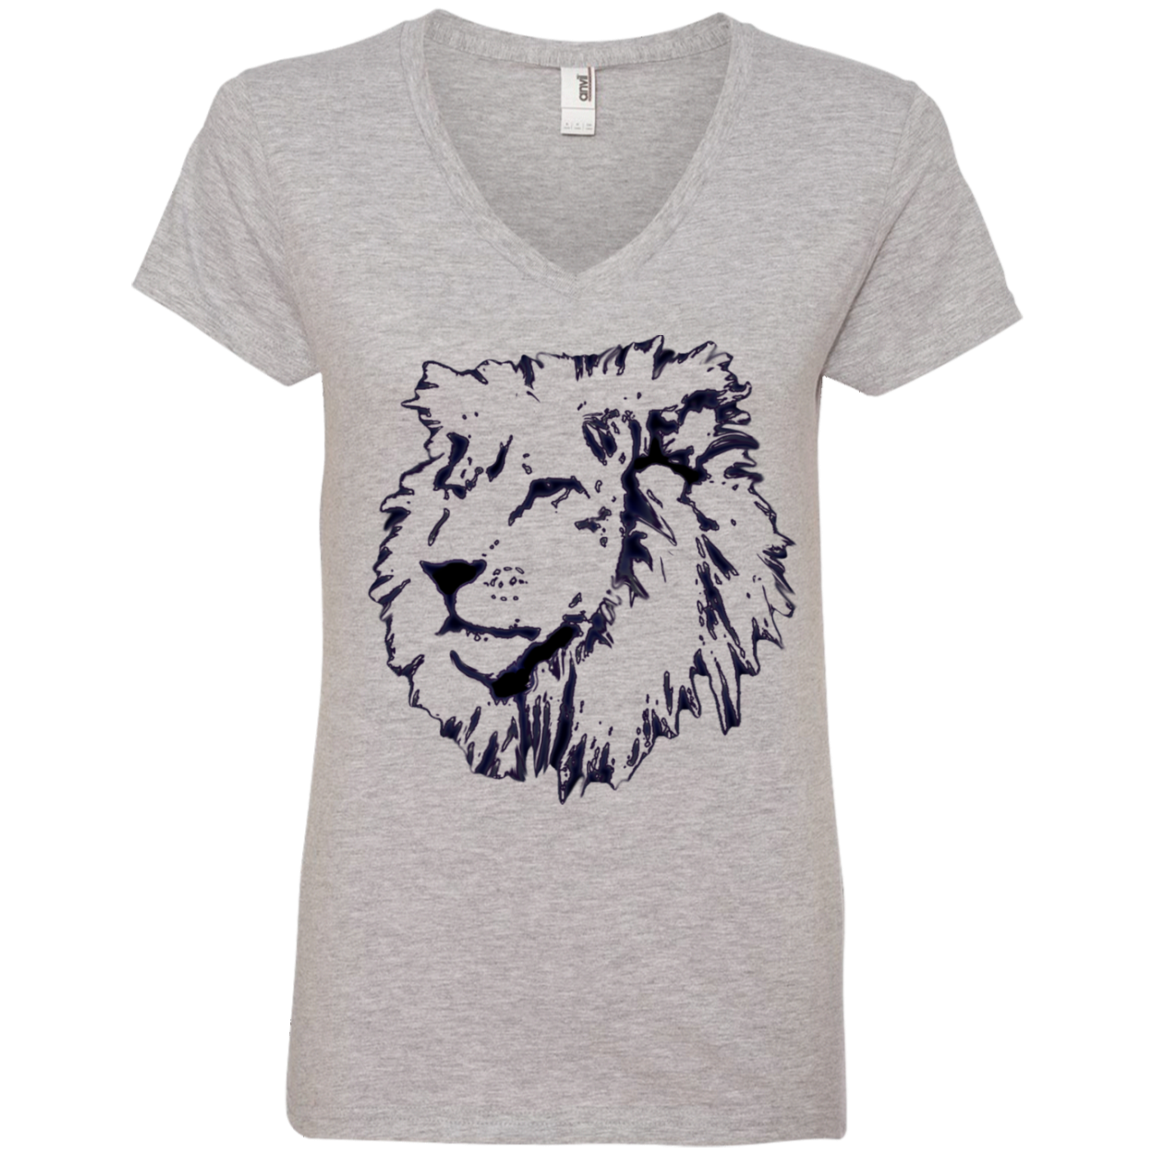 Just added this new Joseph Lion Outli... Check it out! http://catrescue.myshopify.com/products/joseph-lion-outline-ladies-v-neck-tee?utm_campaign=social_autopilot&utm_source=pin&utm_medium=pin